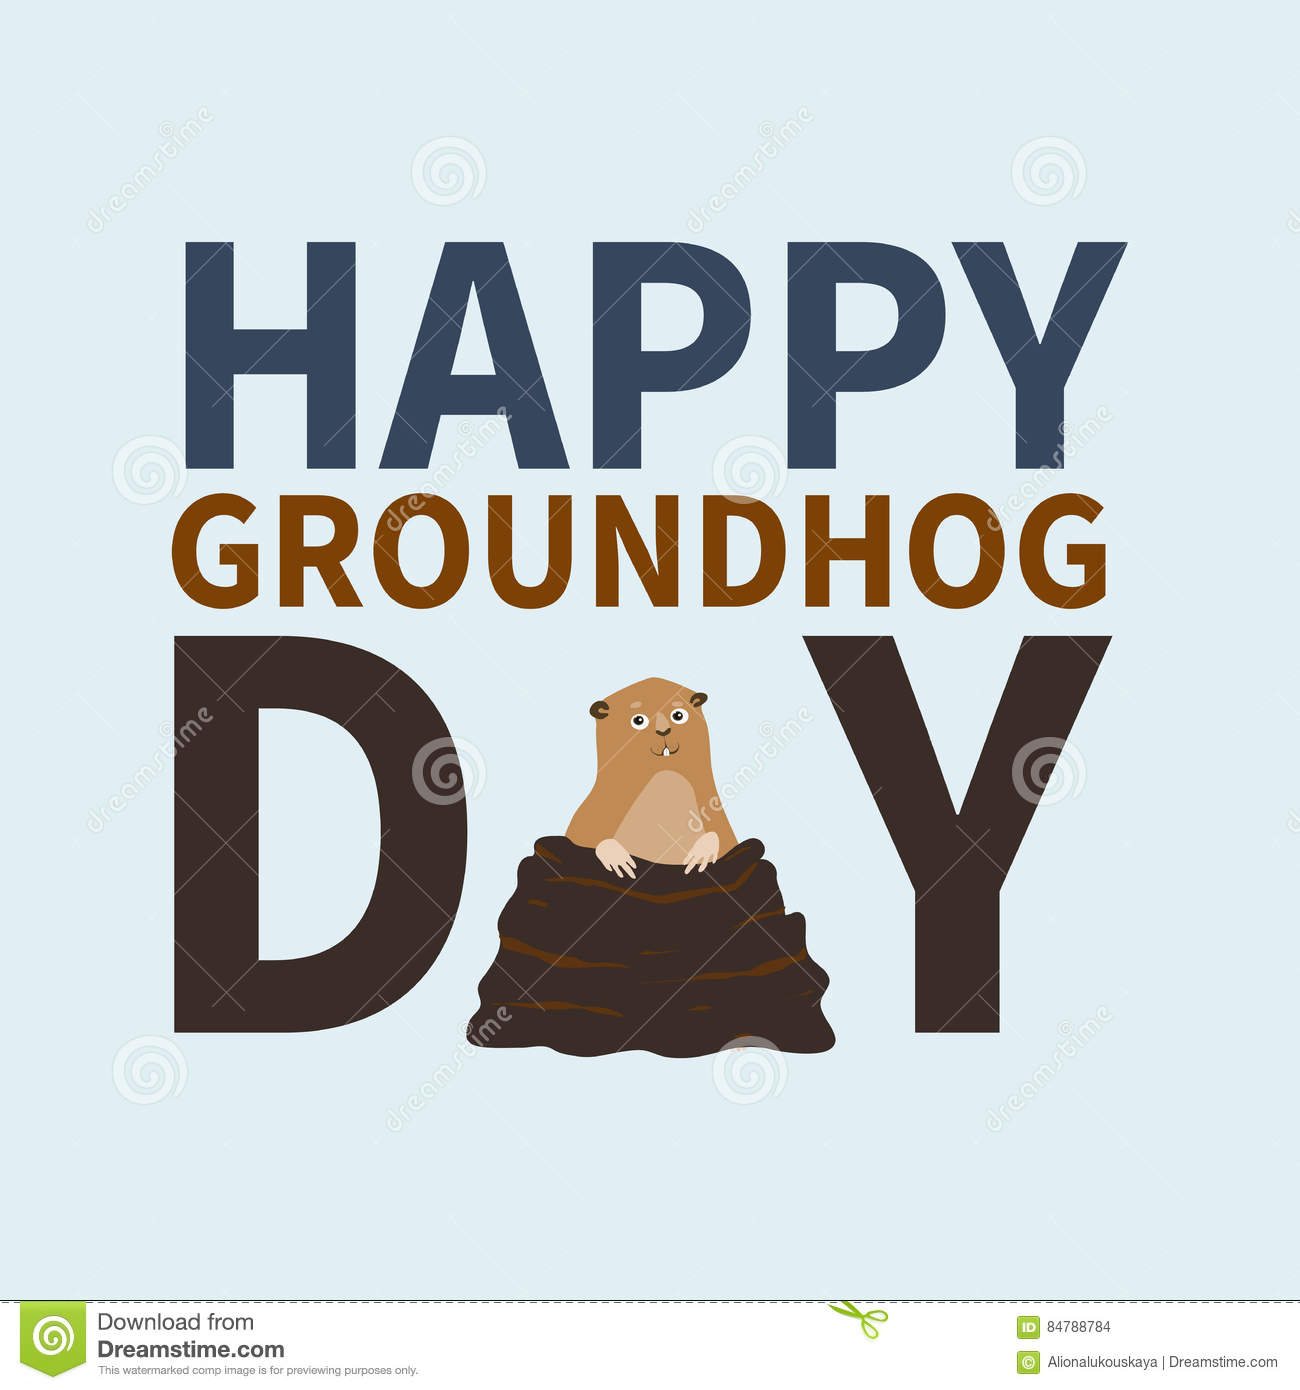 Happy groundhog daylogo iconcute happy marmot emerged from happy groundhog daylogo iconcute happy marmot emerged from burrowsperfect for greeting cardsinvitations postersprints on t shirt wish text m4hsunfo